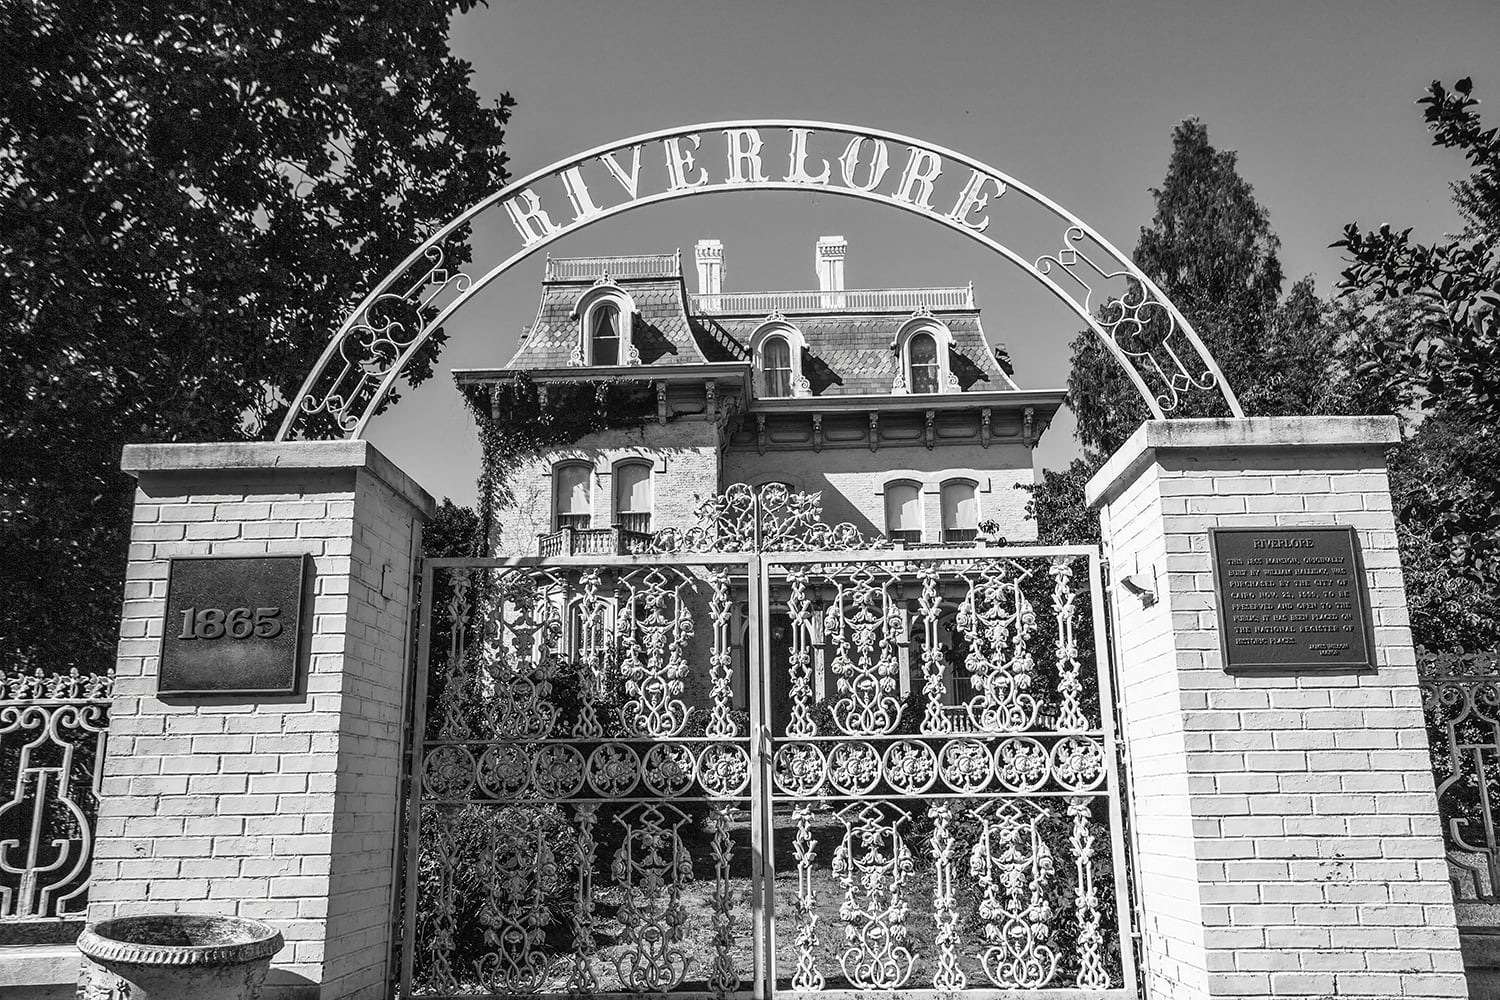 Riverlore Mansion seen behind its arched and ornamental iron gates.